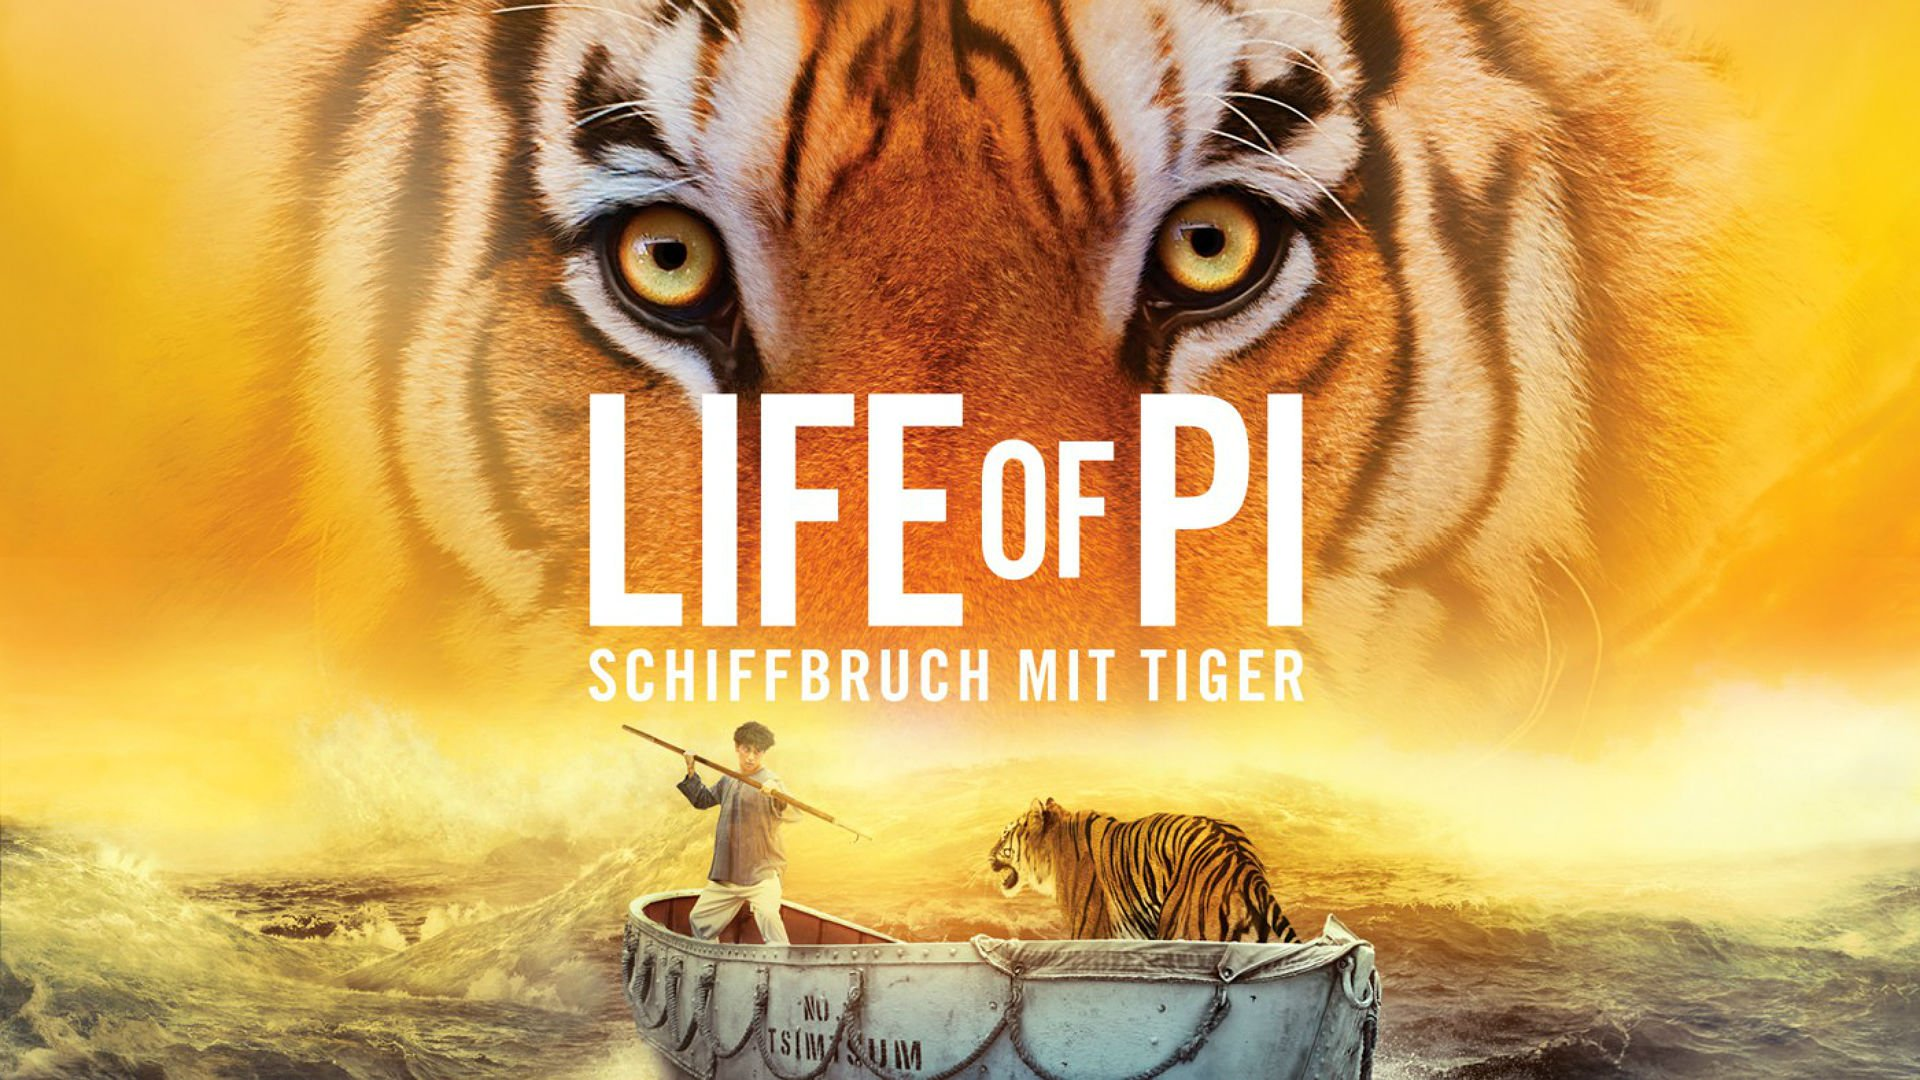 life of pi family adventure drama fantasy tiger d animation life of pi family adventure drama fantasy tiger 3 d animation 1lifepi friend shipwreck predator tiger ocean sea voyage ship boat poster